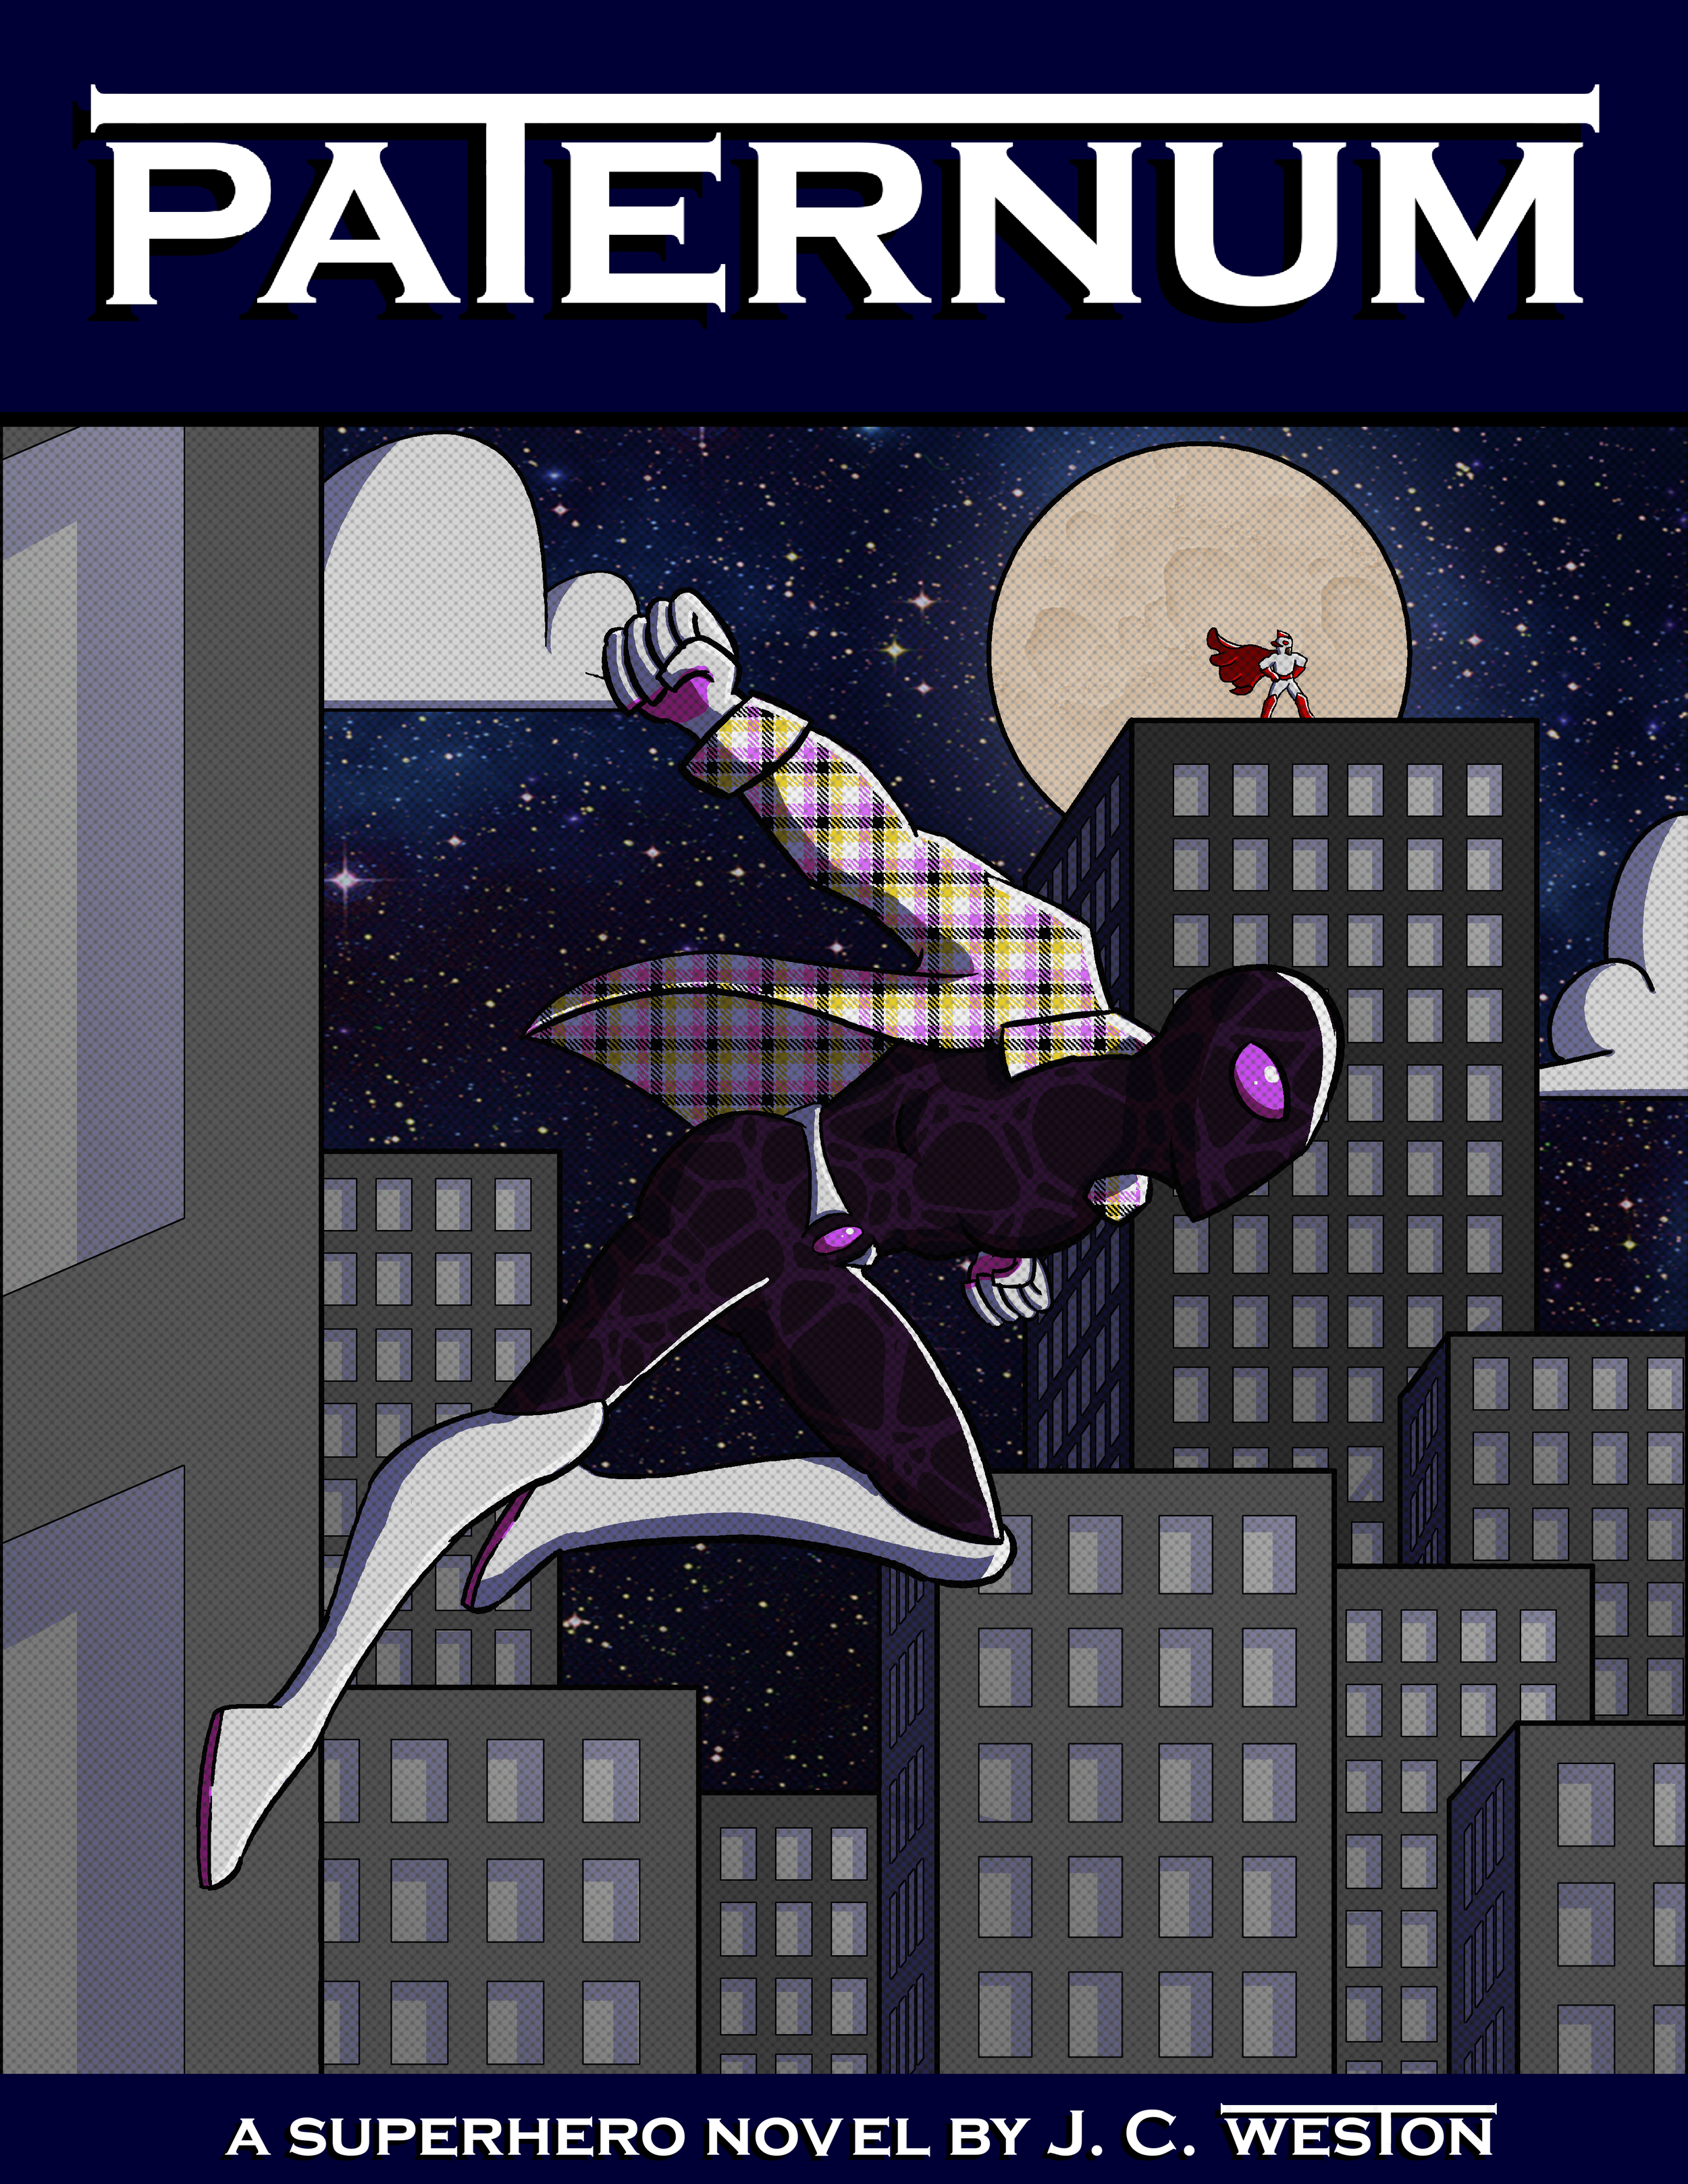 The cover of Paternum: It depicts the main character, in costume as Newton, leaping from the side of a building. Behind them, a city skyline can be seen against a starry night. In the distance, Canaveral is framed against the moon.